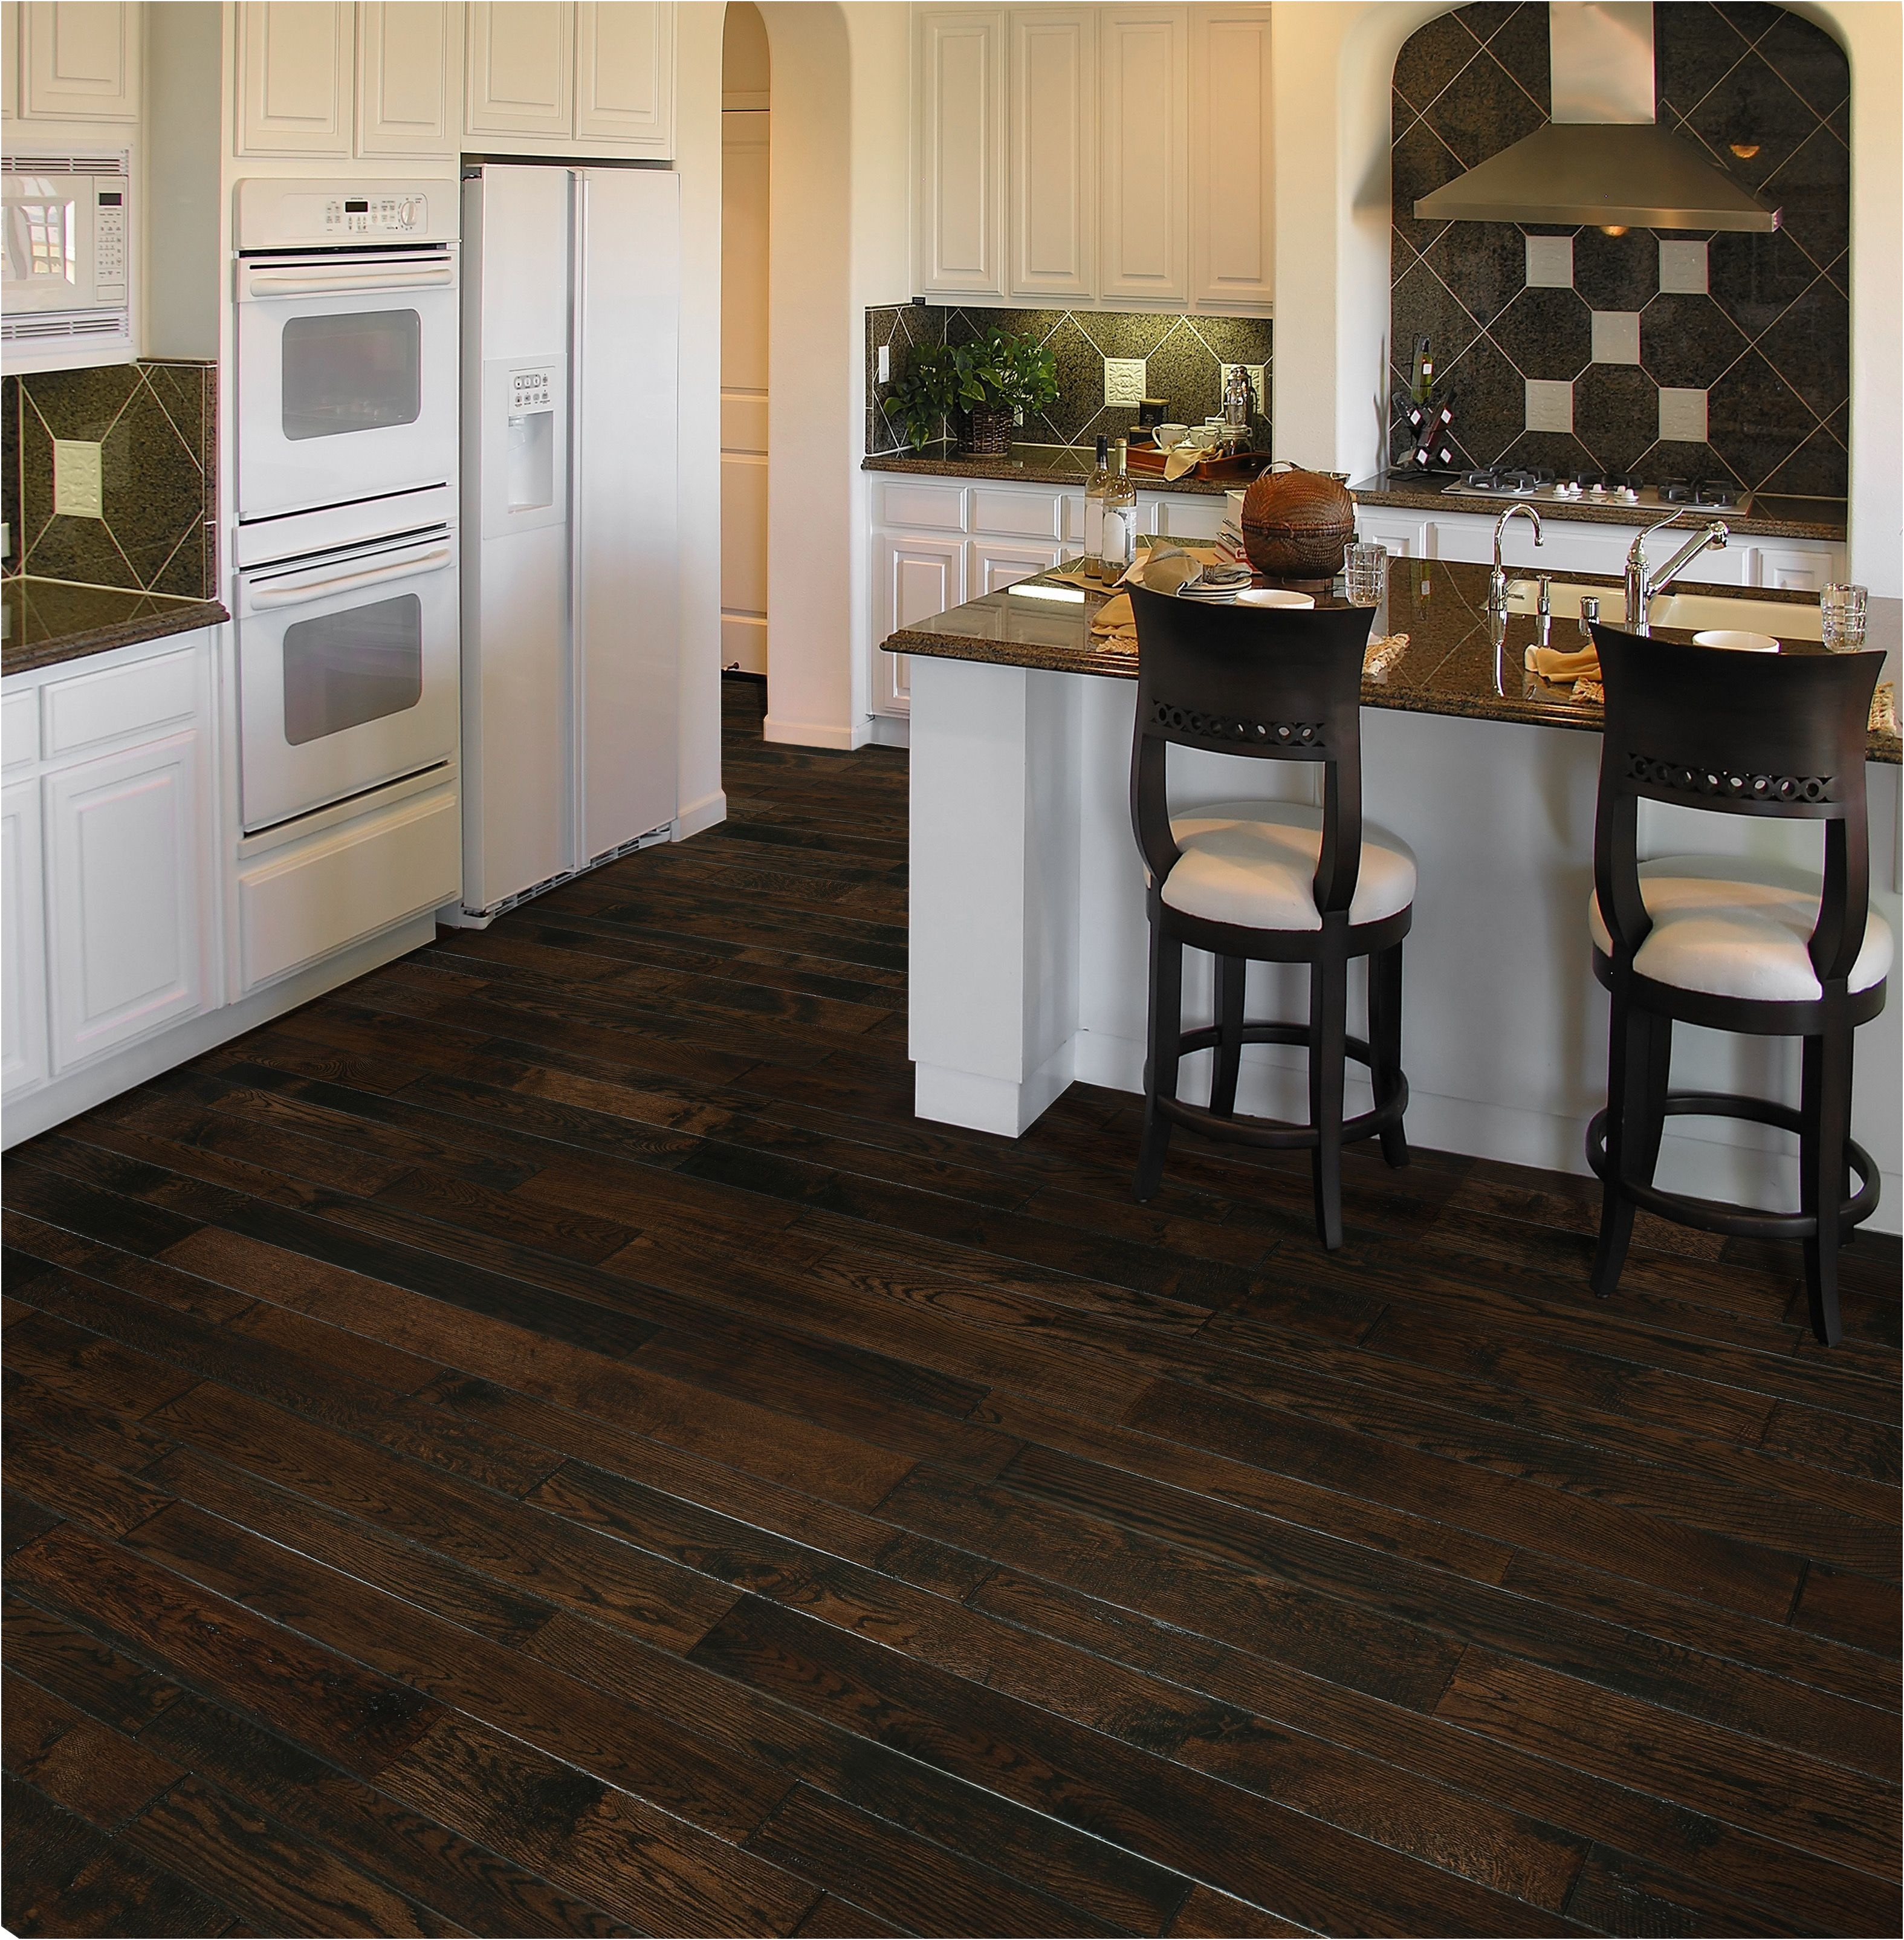 hardwood flooring retailers near me of wood flooring companies near me stock hardwood flooring stores near pertaining to related post